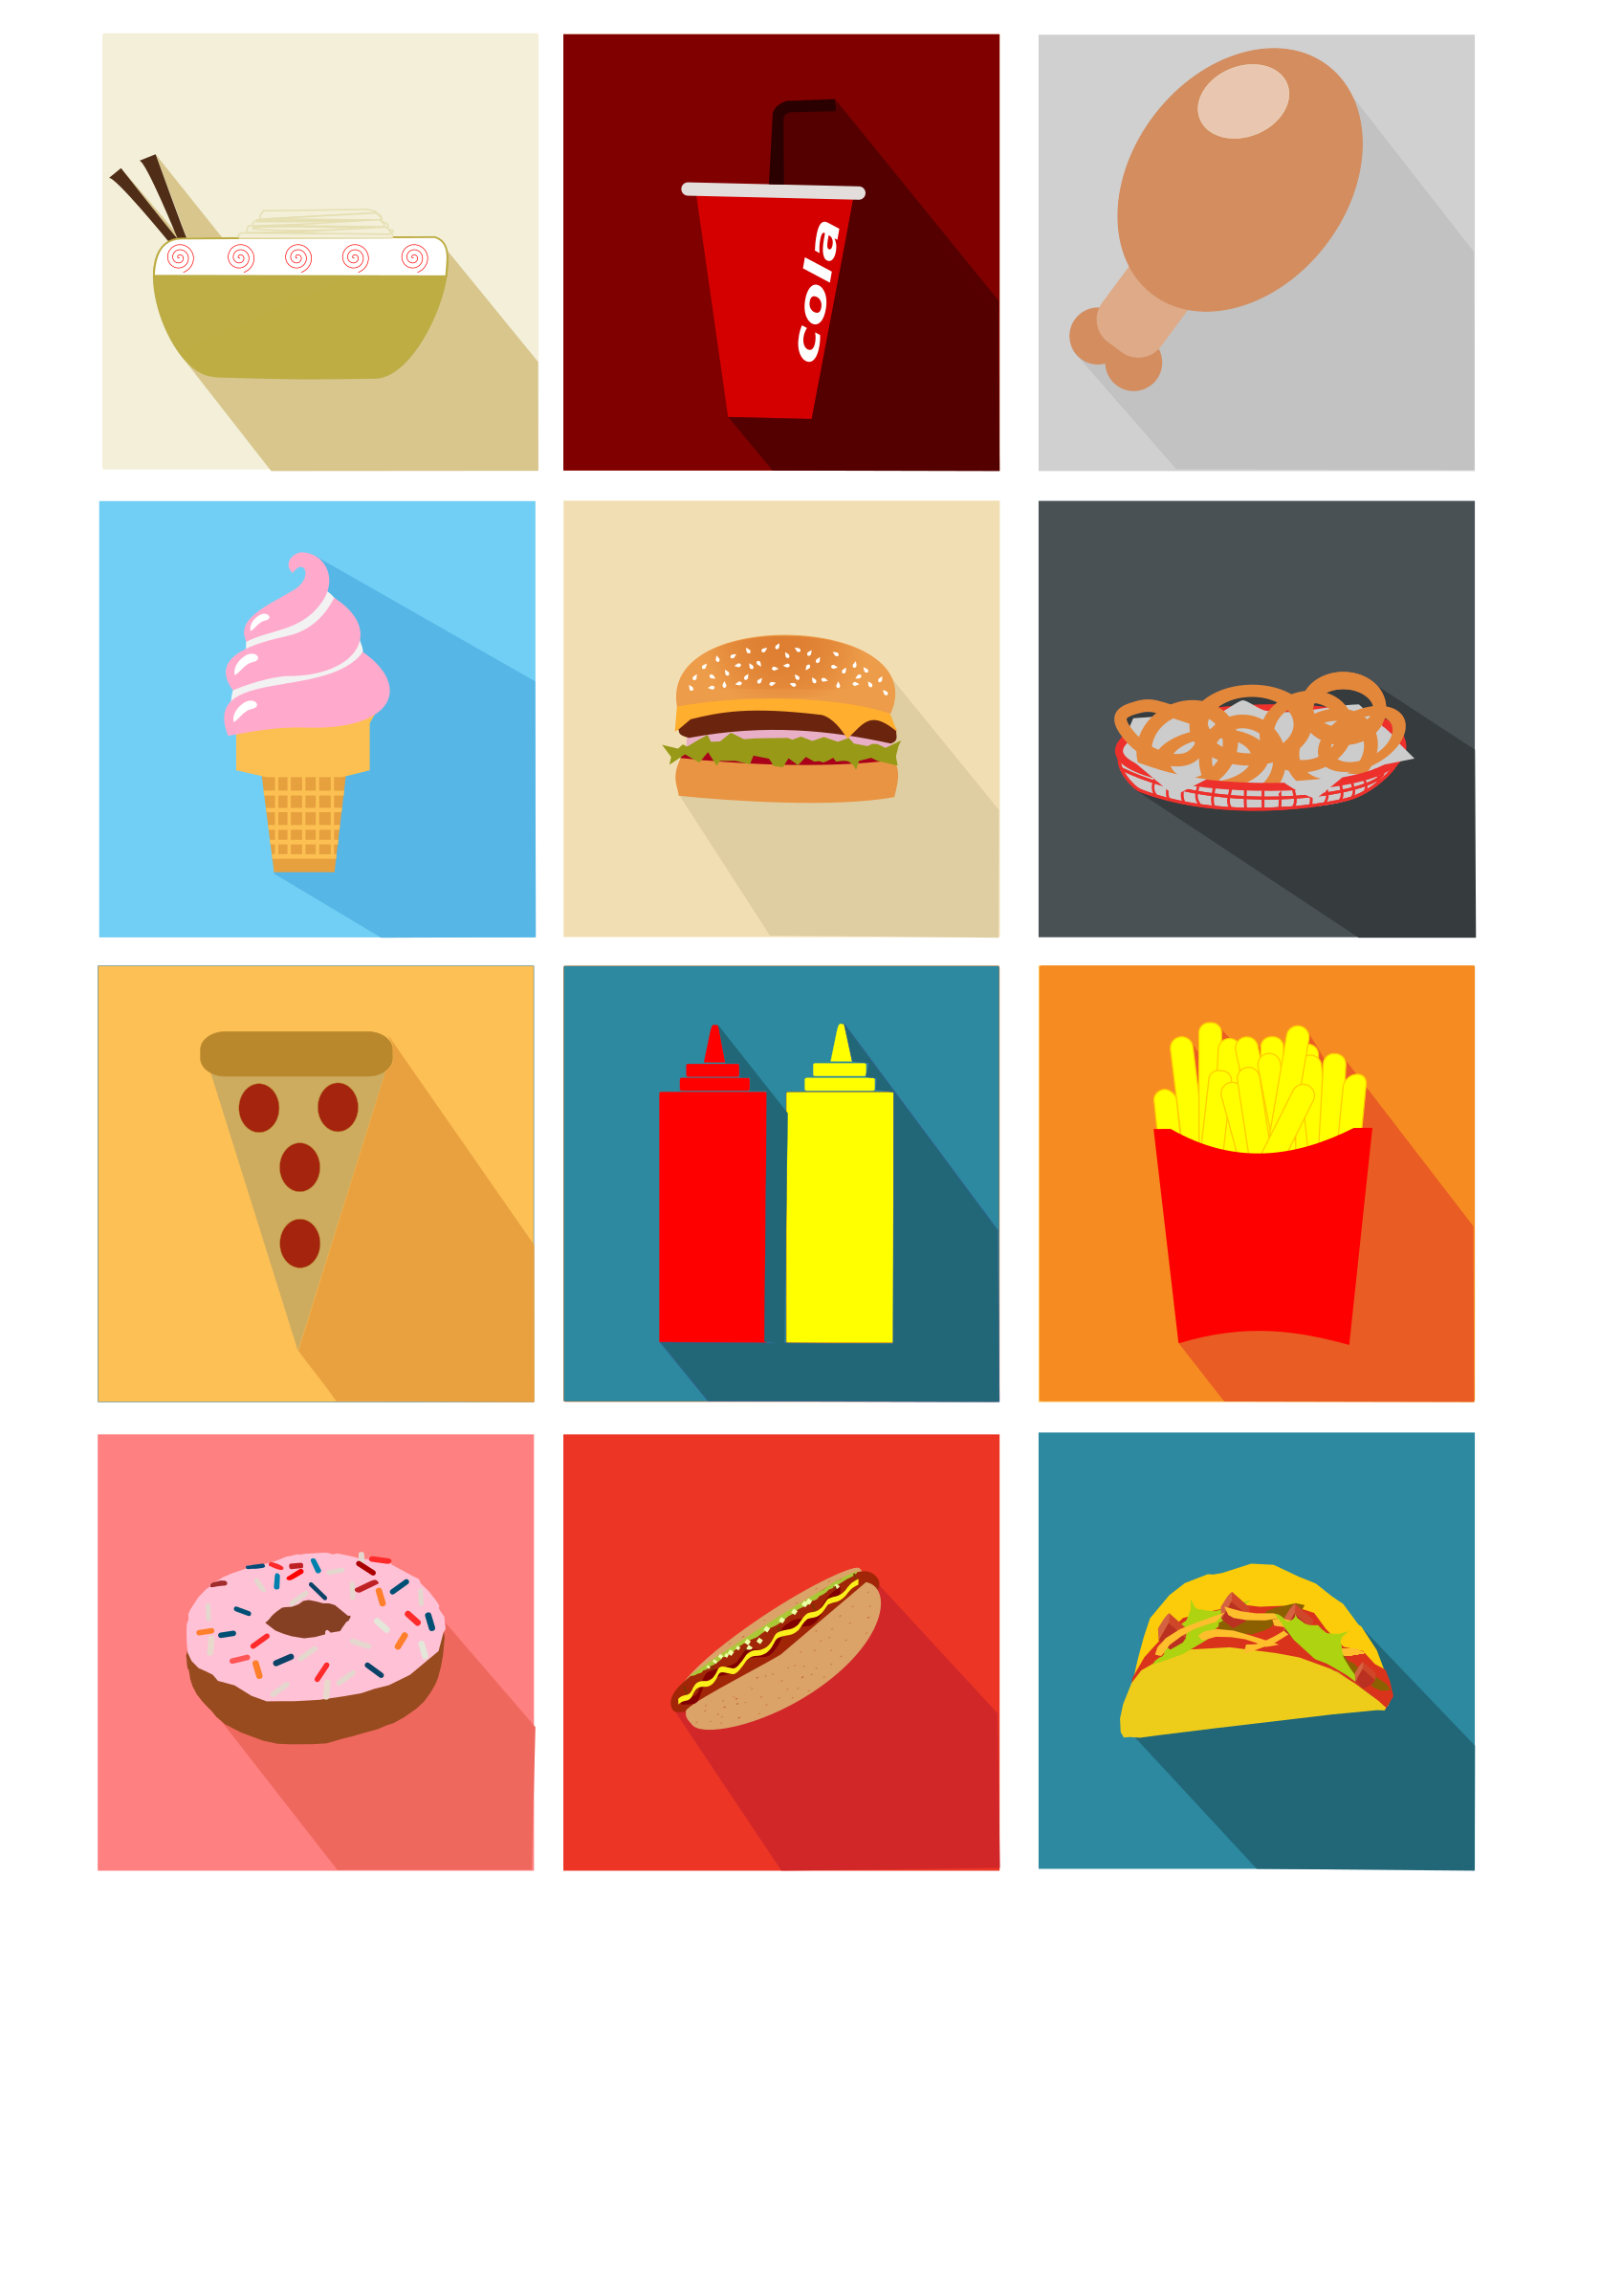 Pizza clipart junk food. Fast long shadow icons